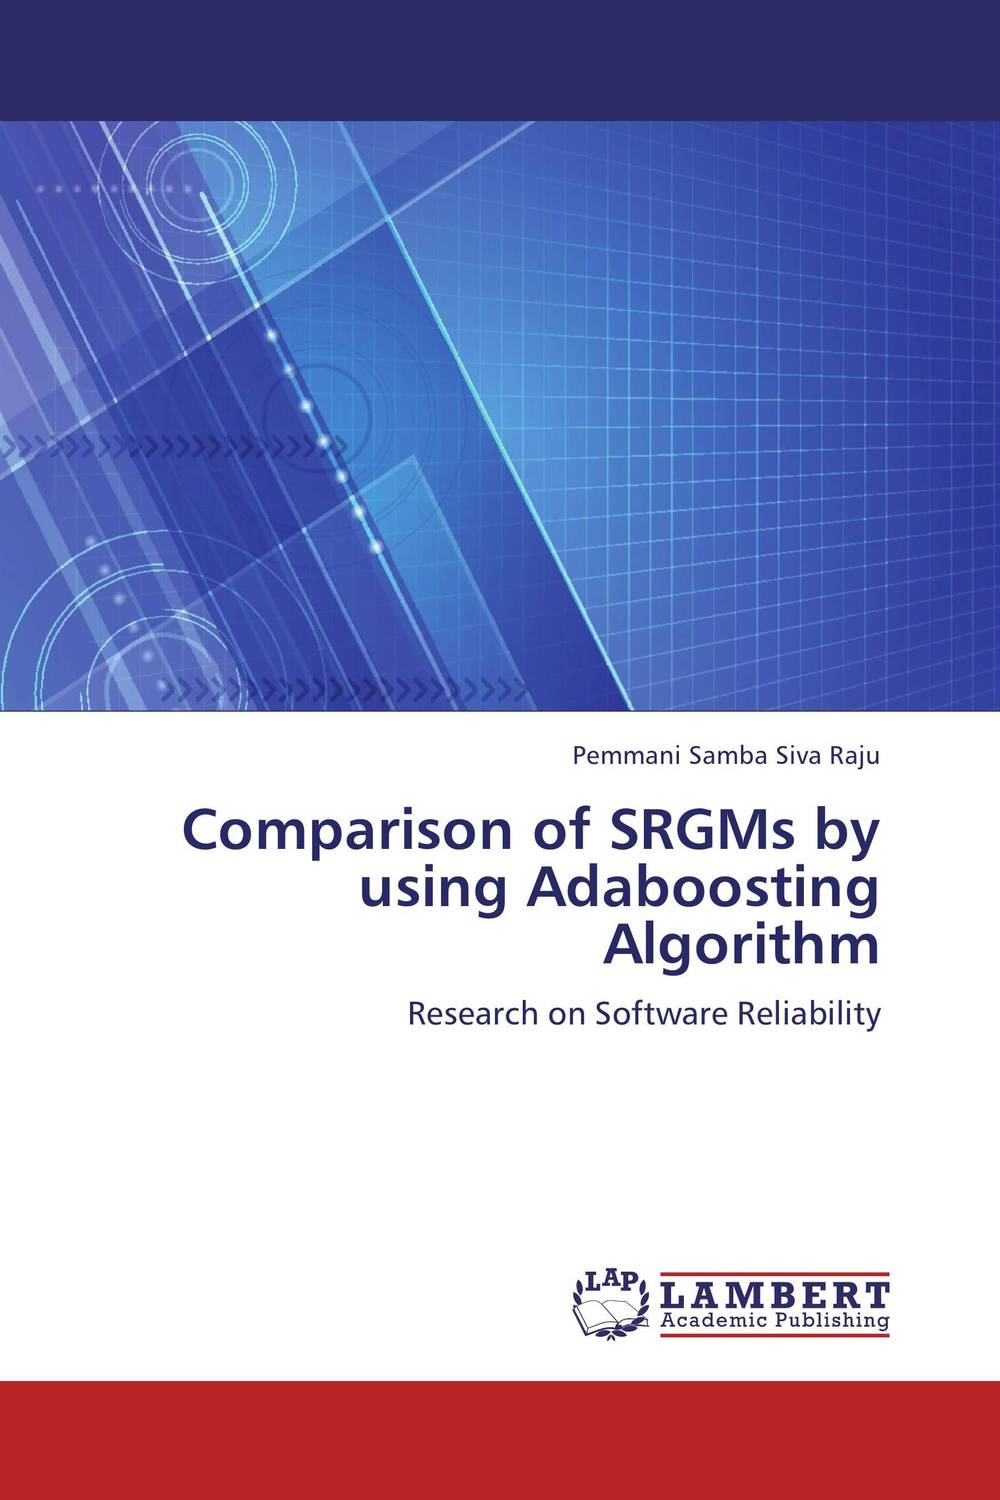 Comparison of SRGMs by using Adaboosting Algorithm software effort estimation using artificial neural networks